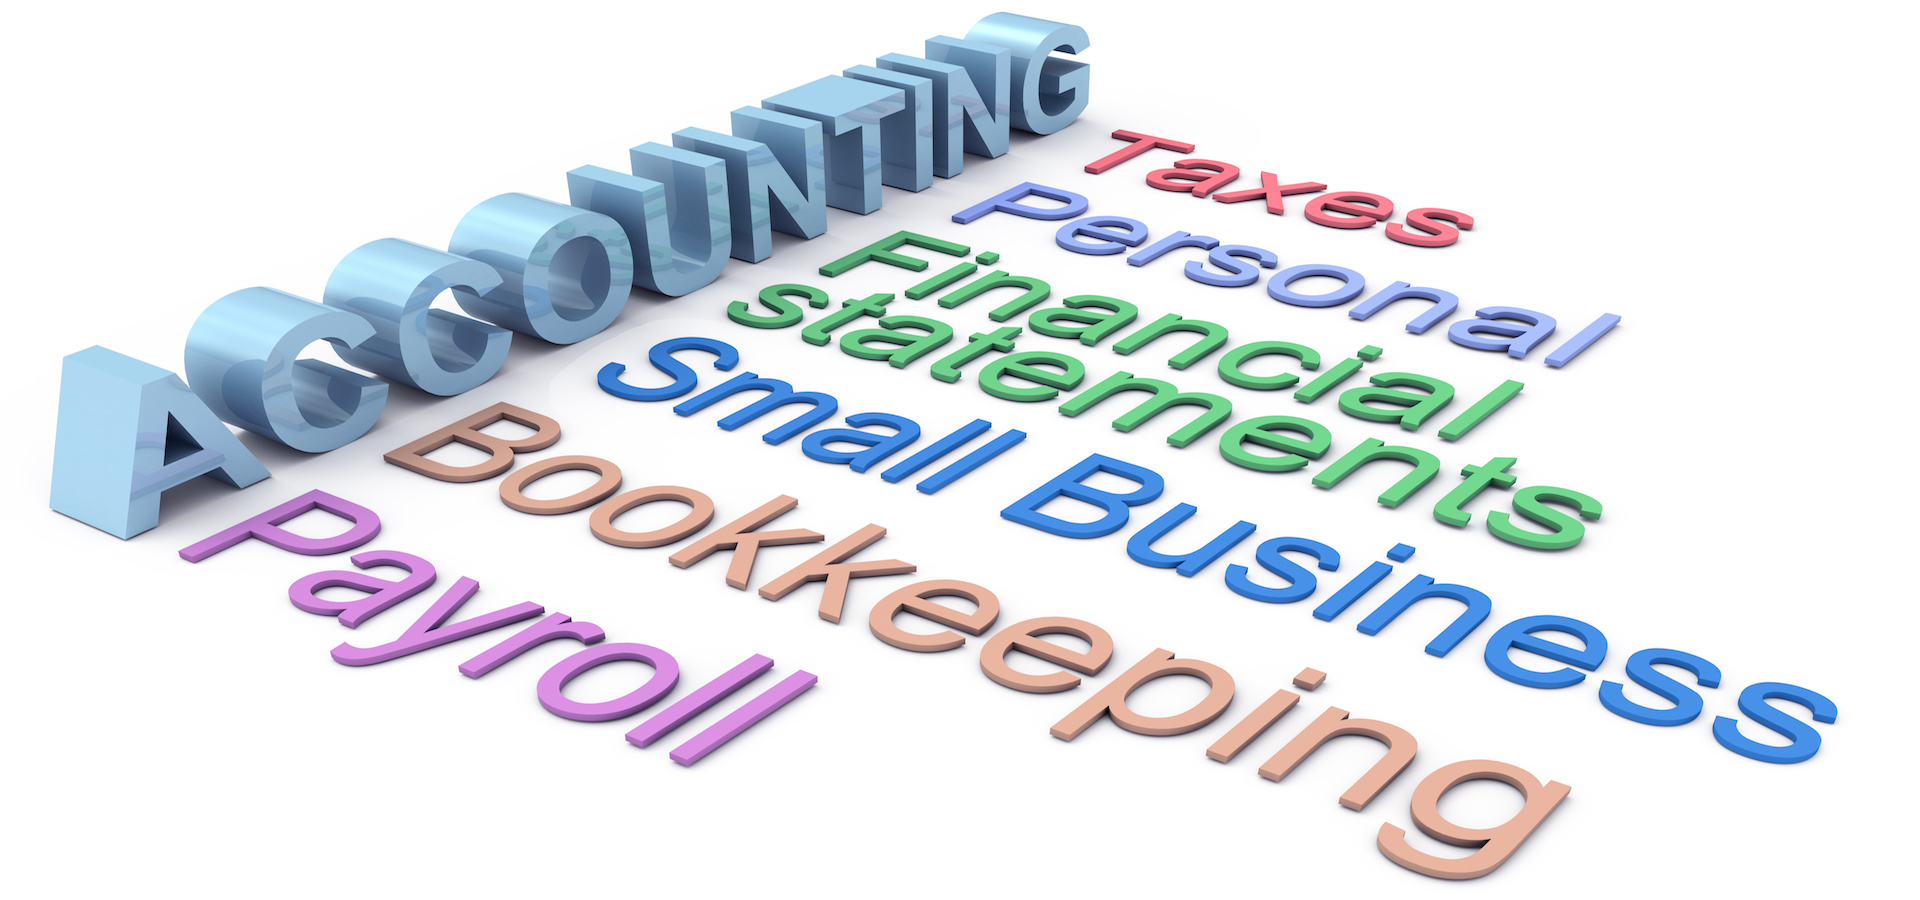 Accounting and related terms